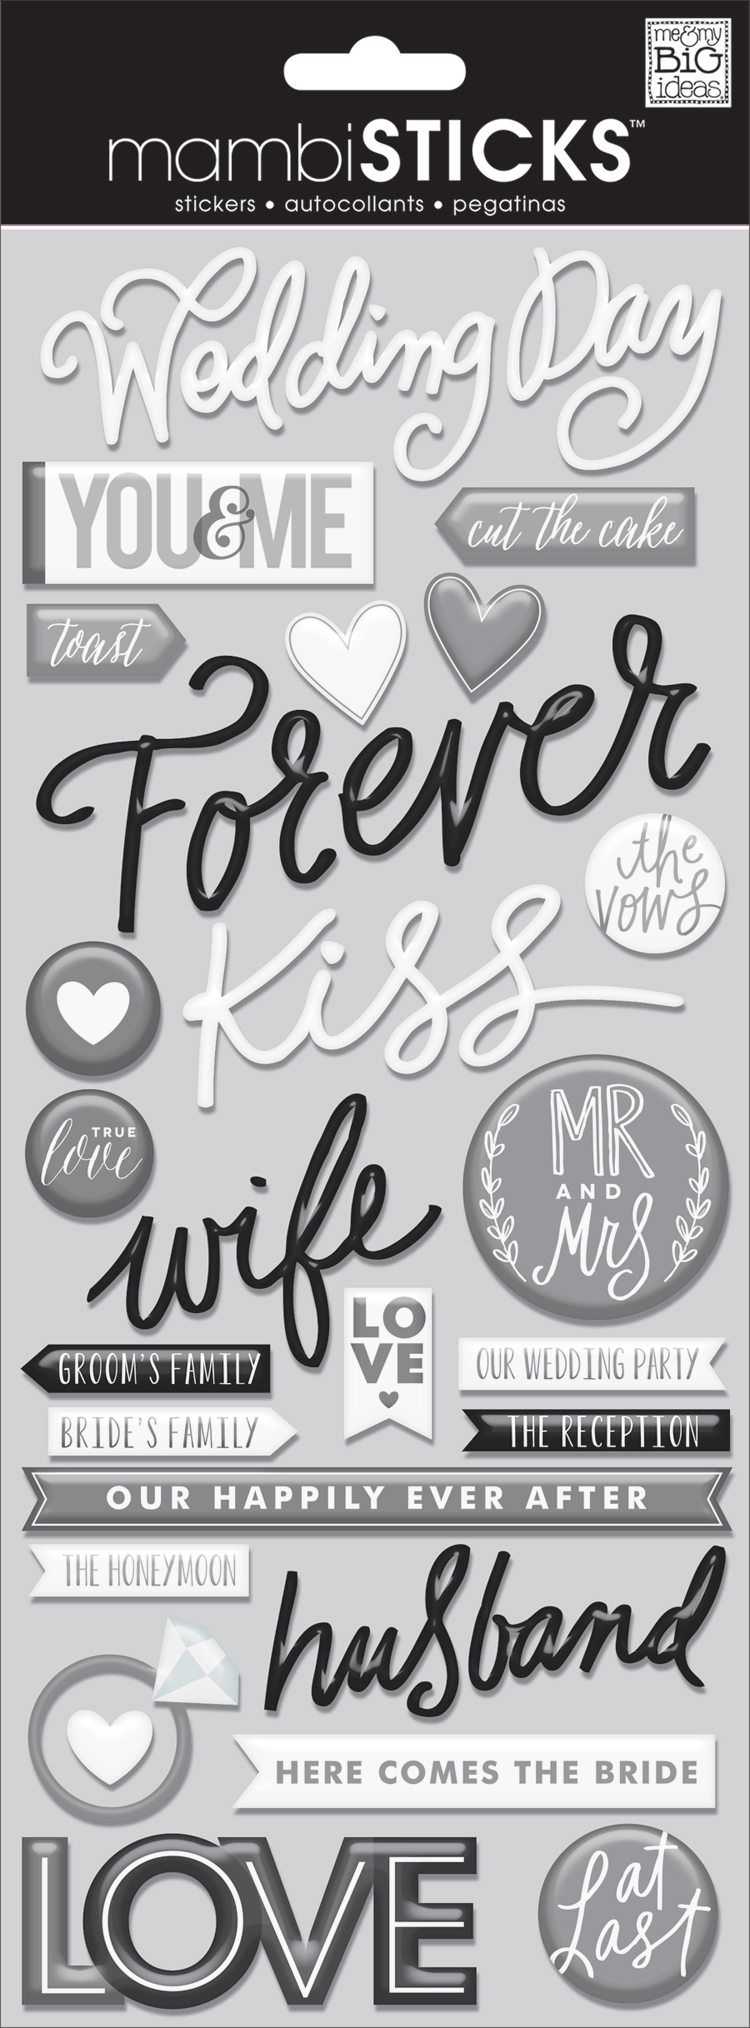 Wedding Day mambiSTICKS epoxy stickers | me & my BIG ideas.jpg